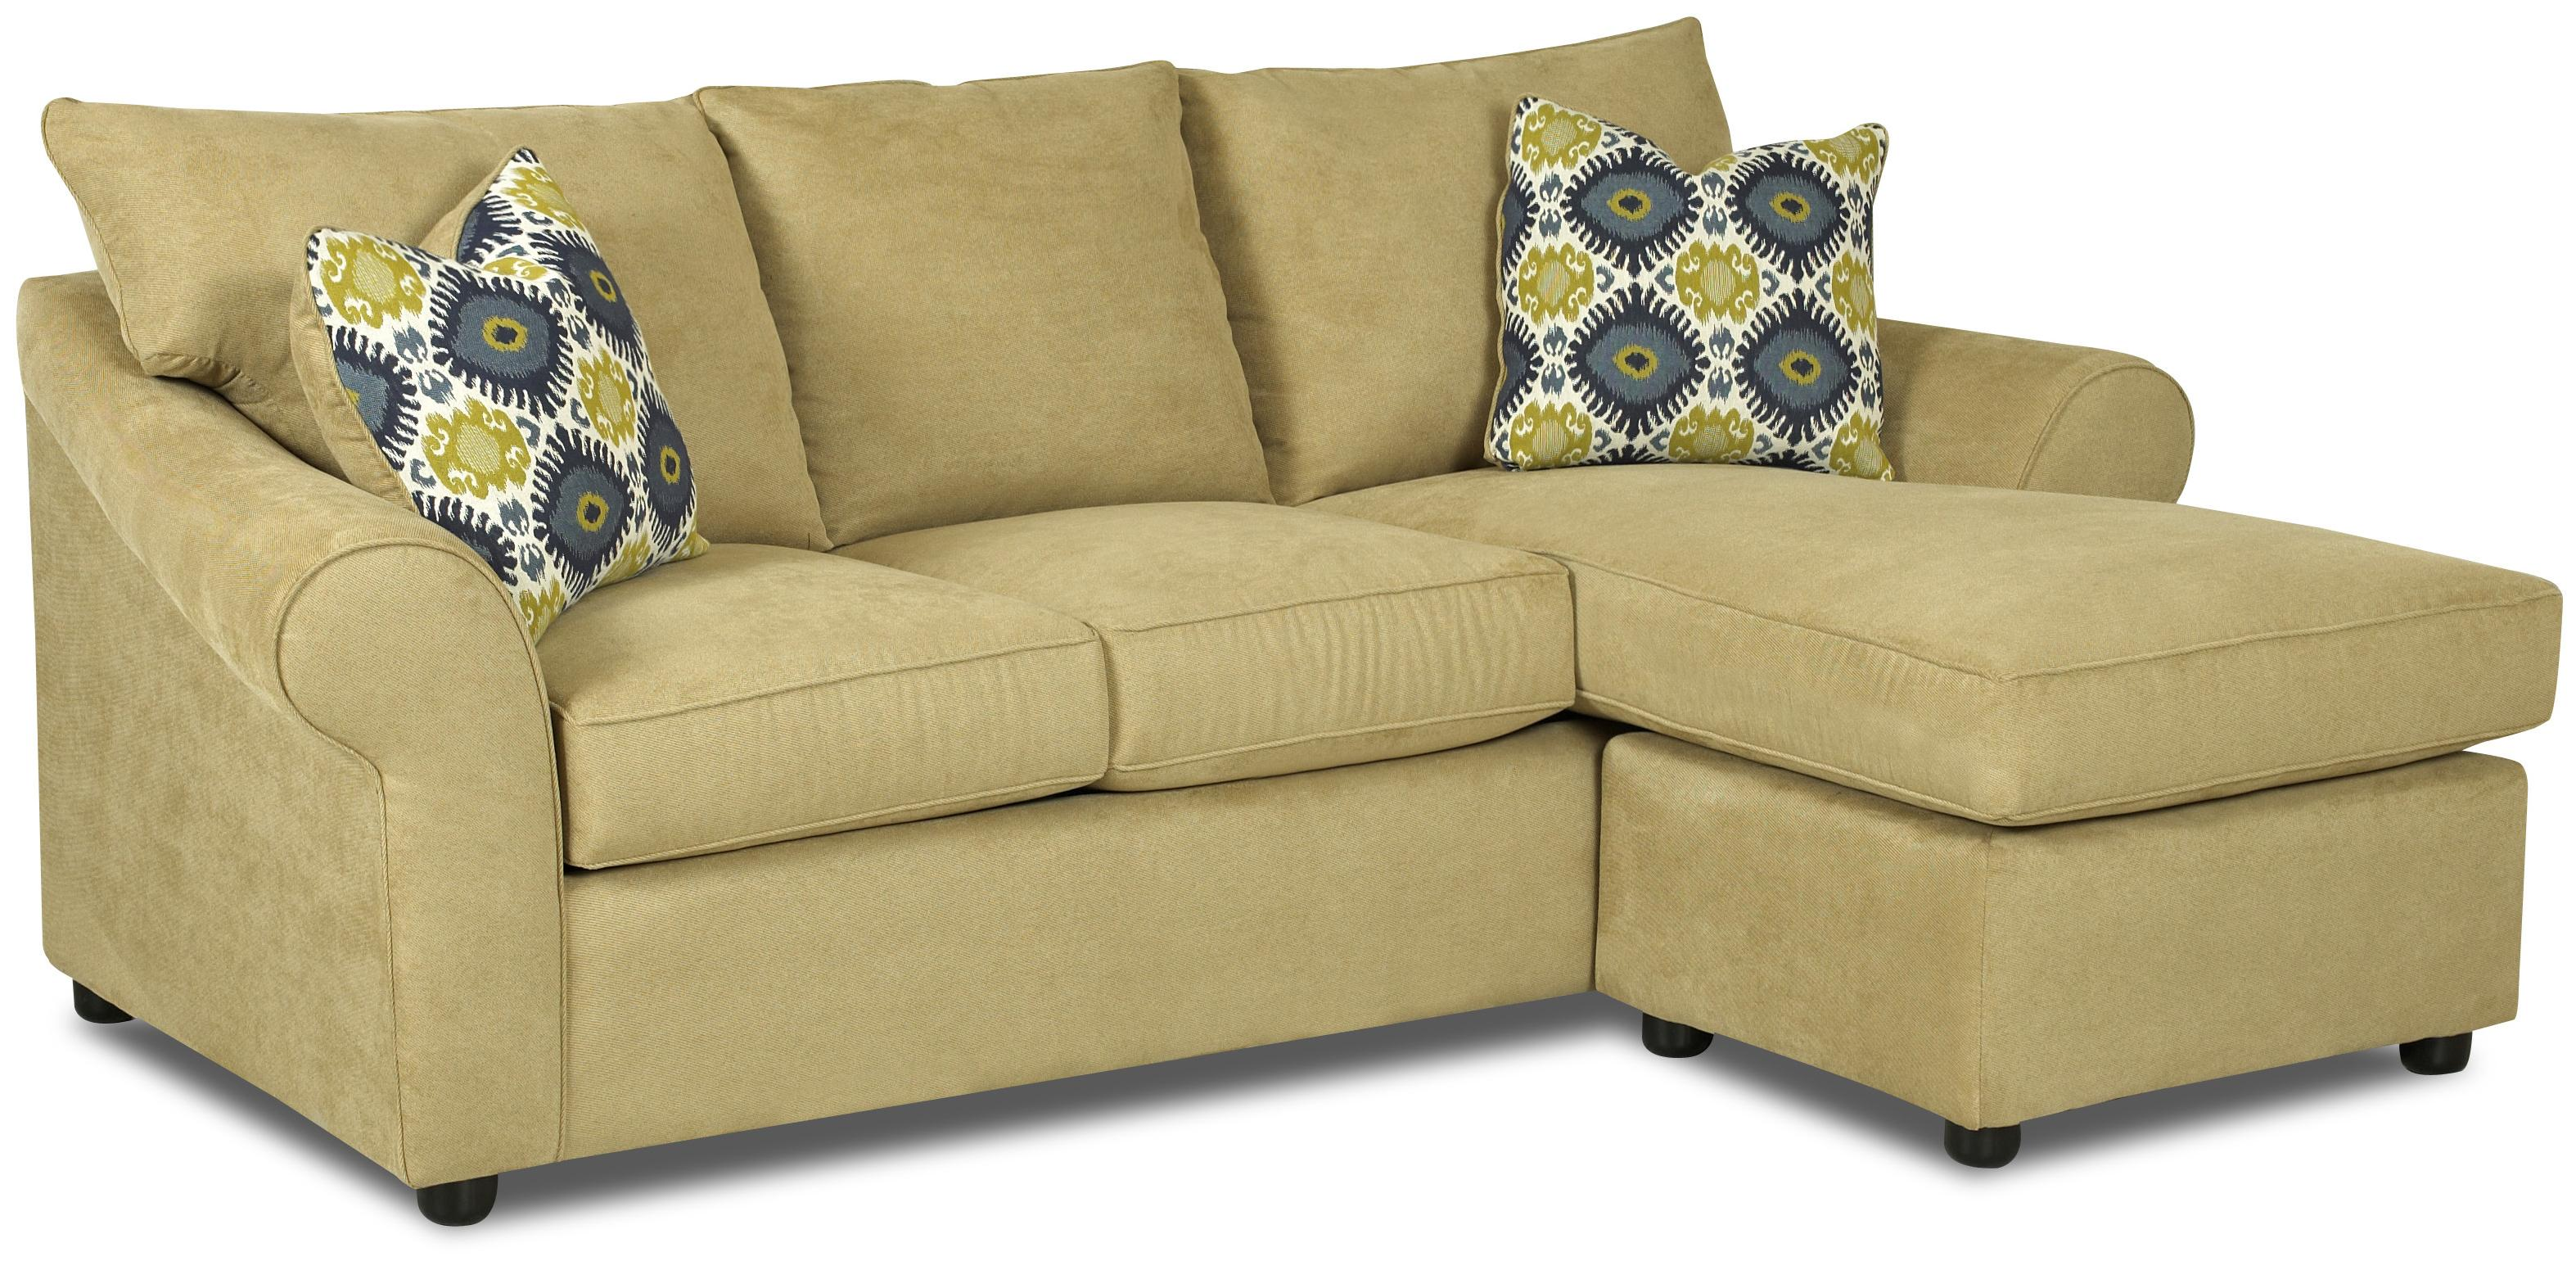 left web sectional piece wid arm sofa reviews lounge couch chaise furn ii hero zoom hei double